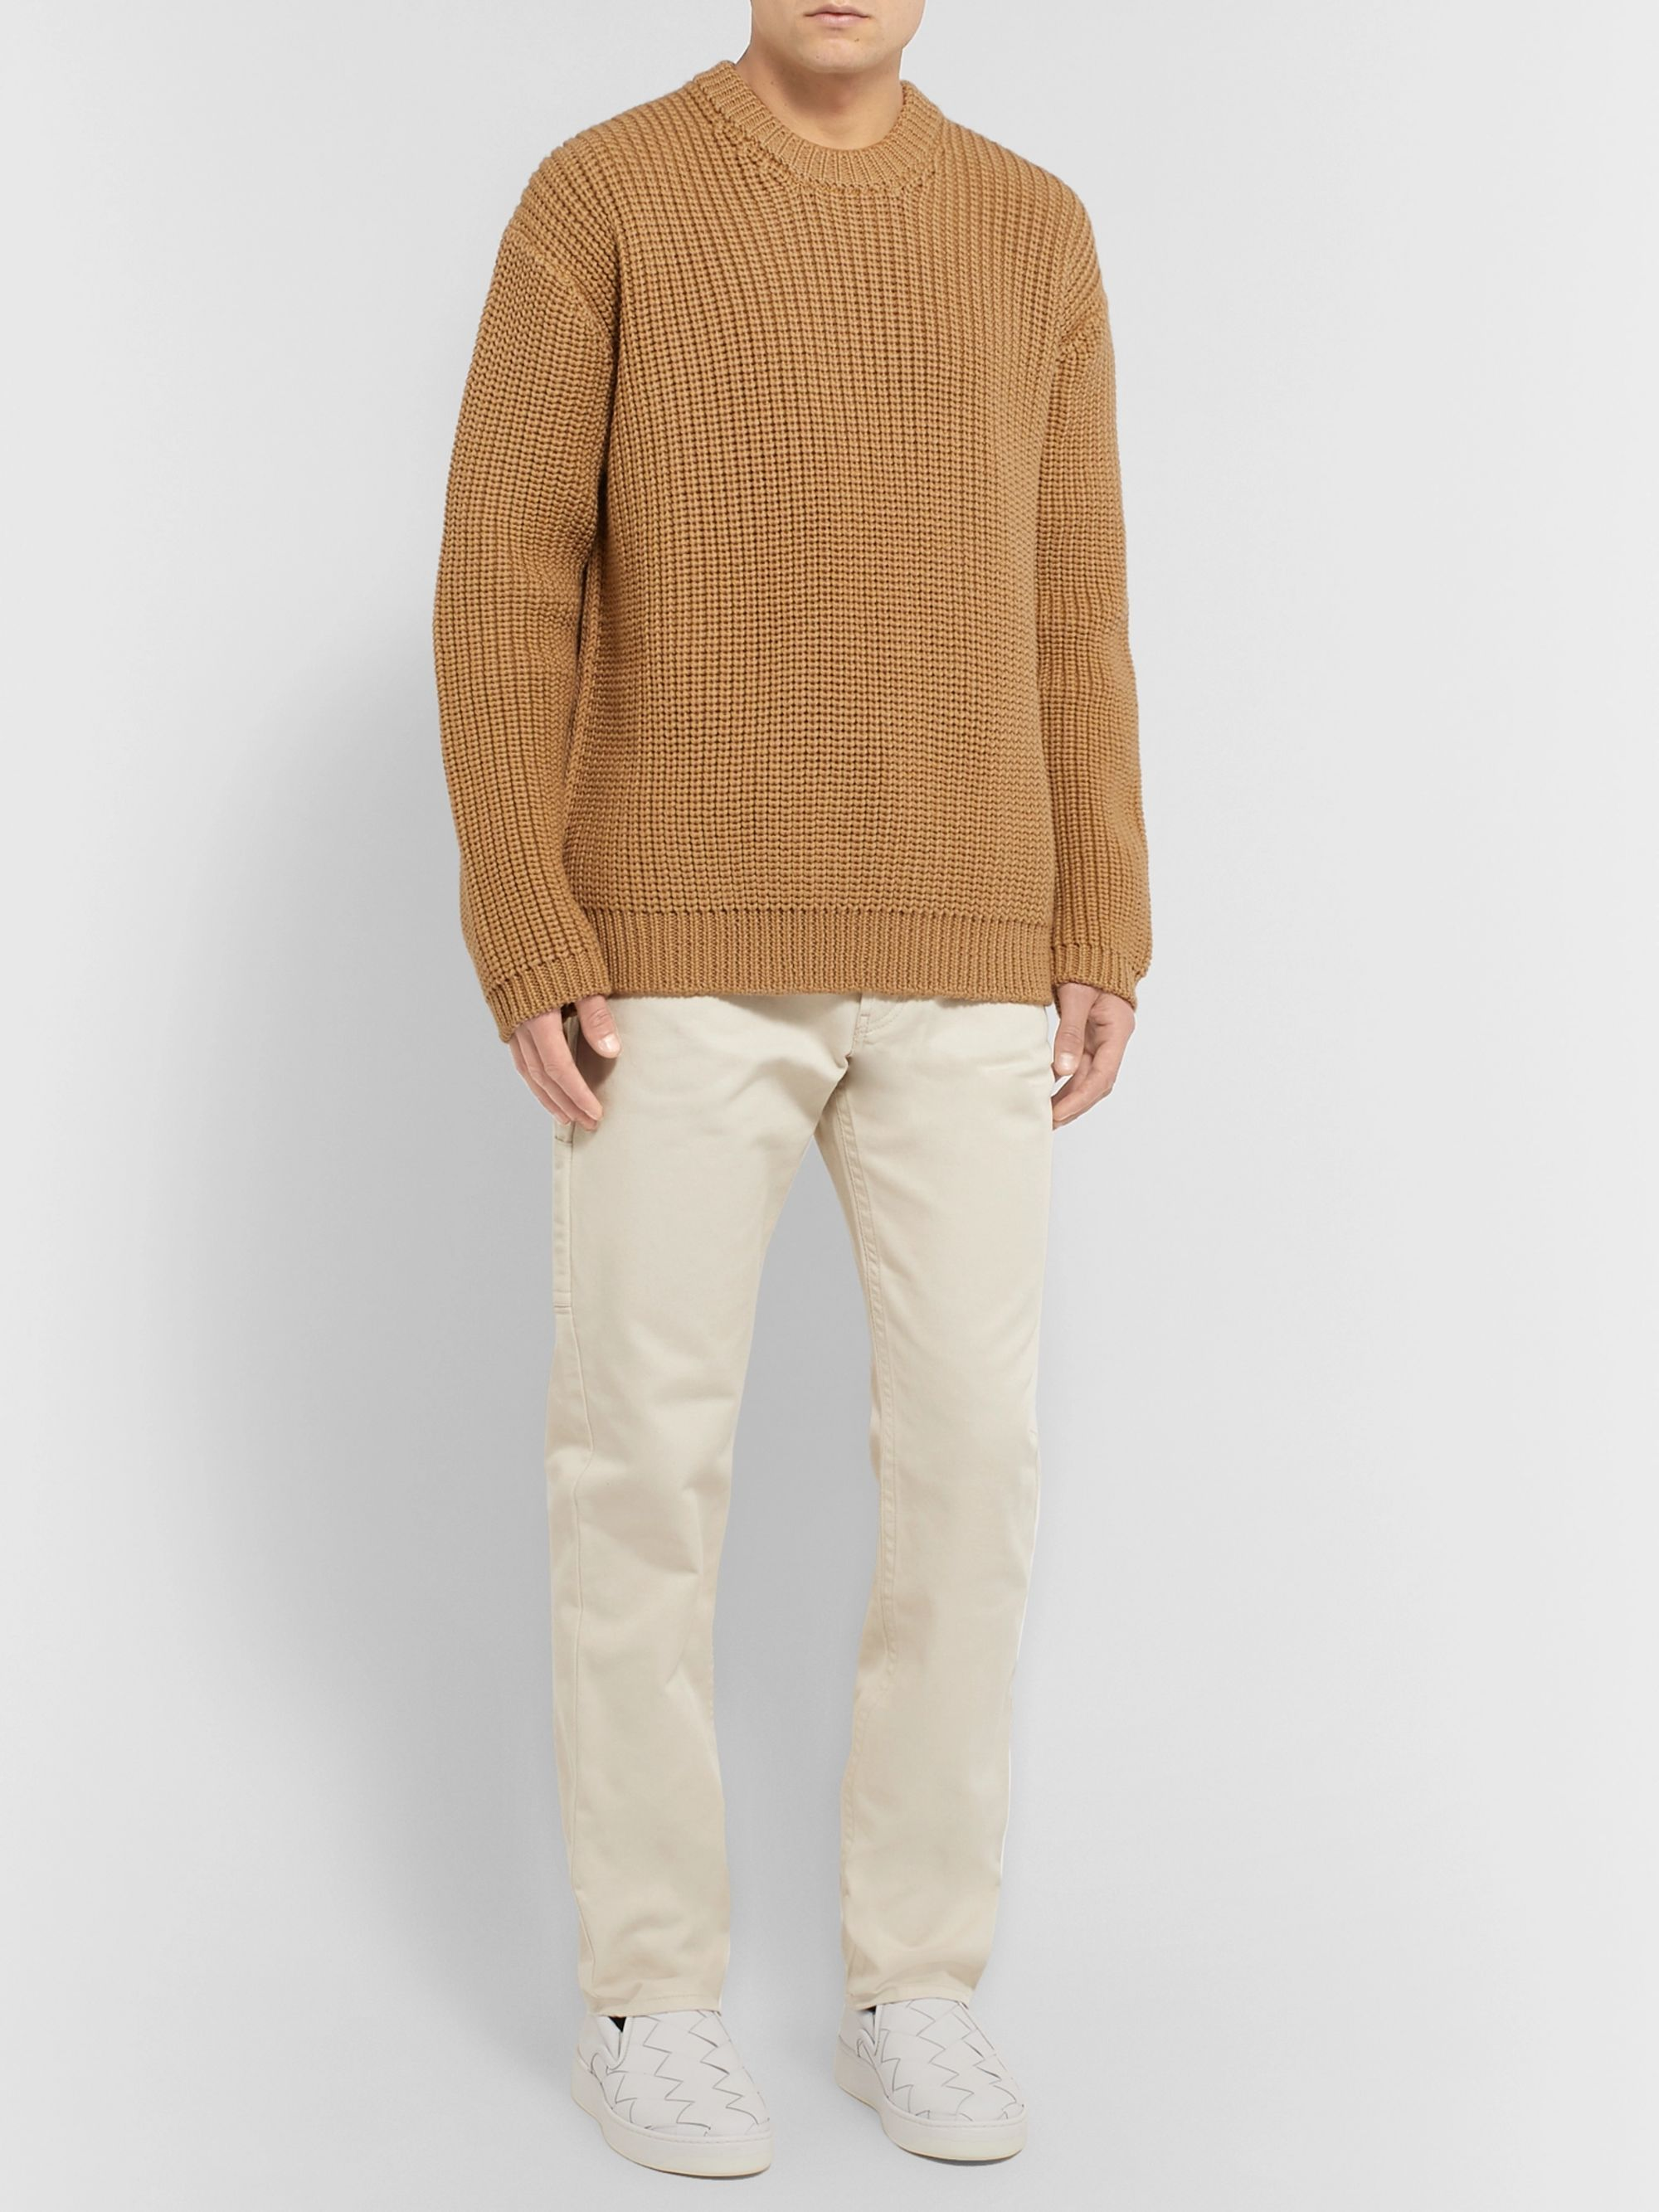 Bottega Veneta Cotton-Twill Trousers